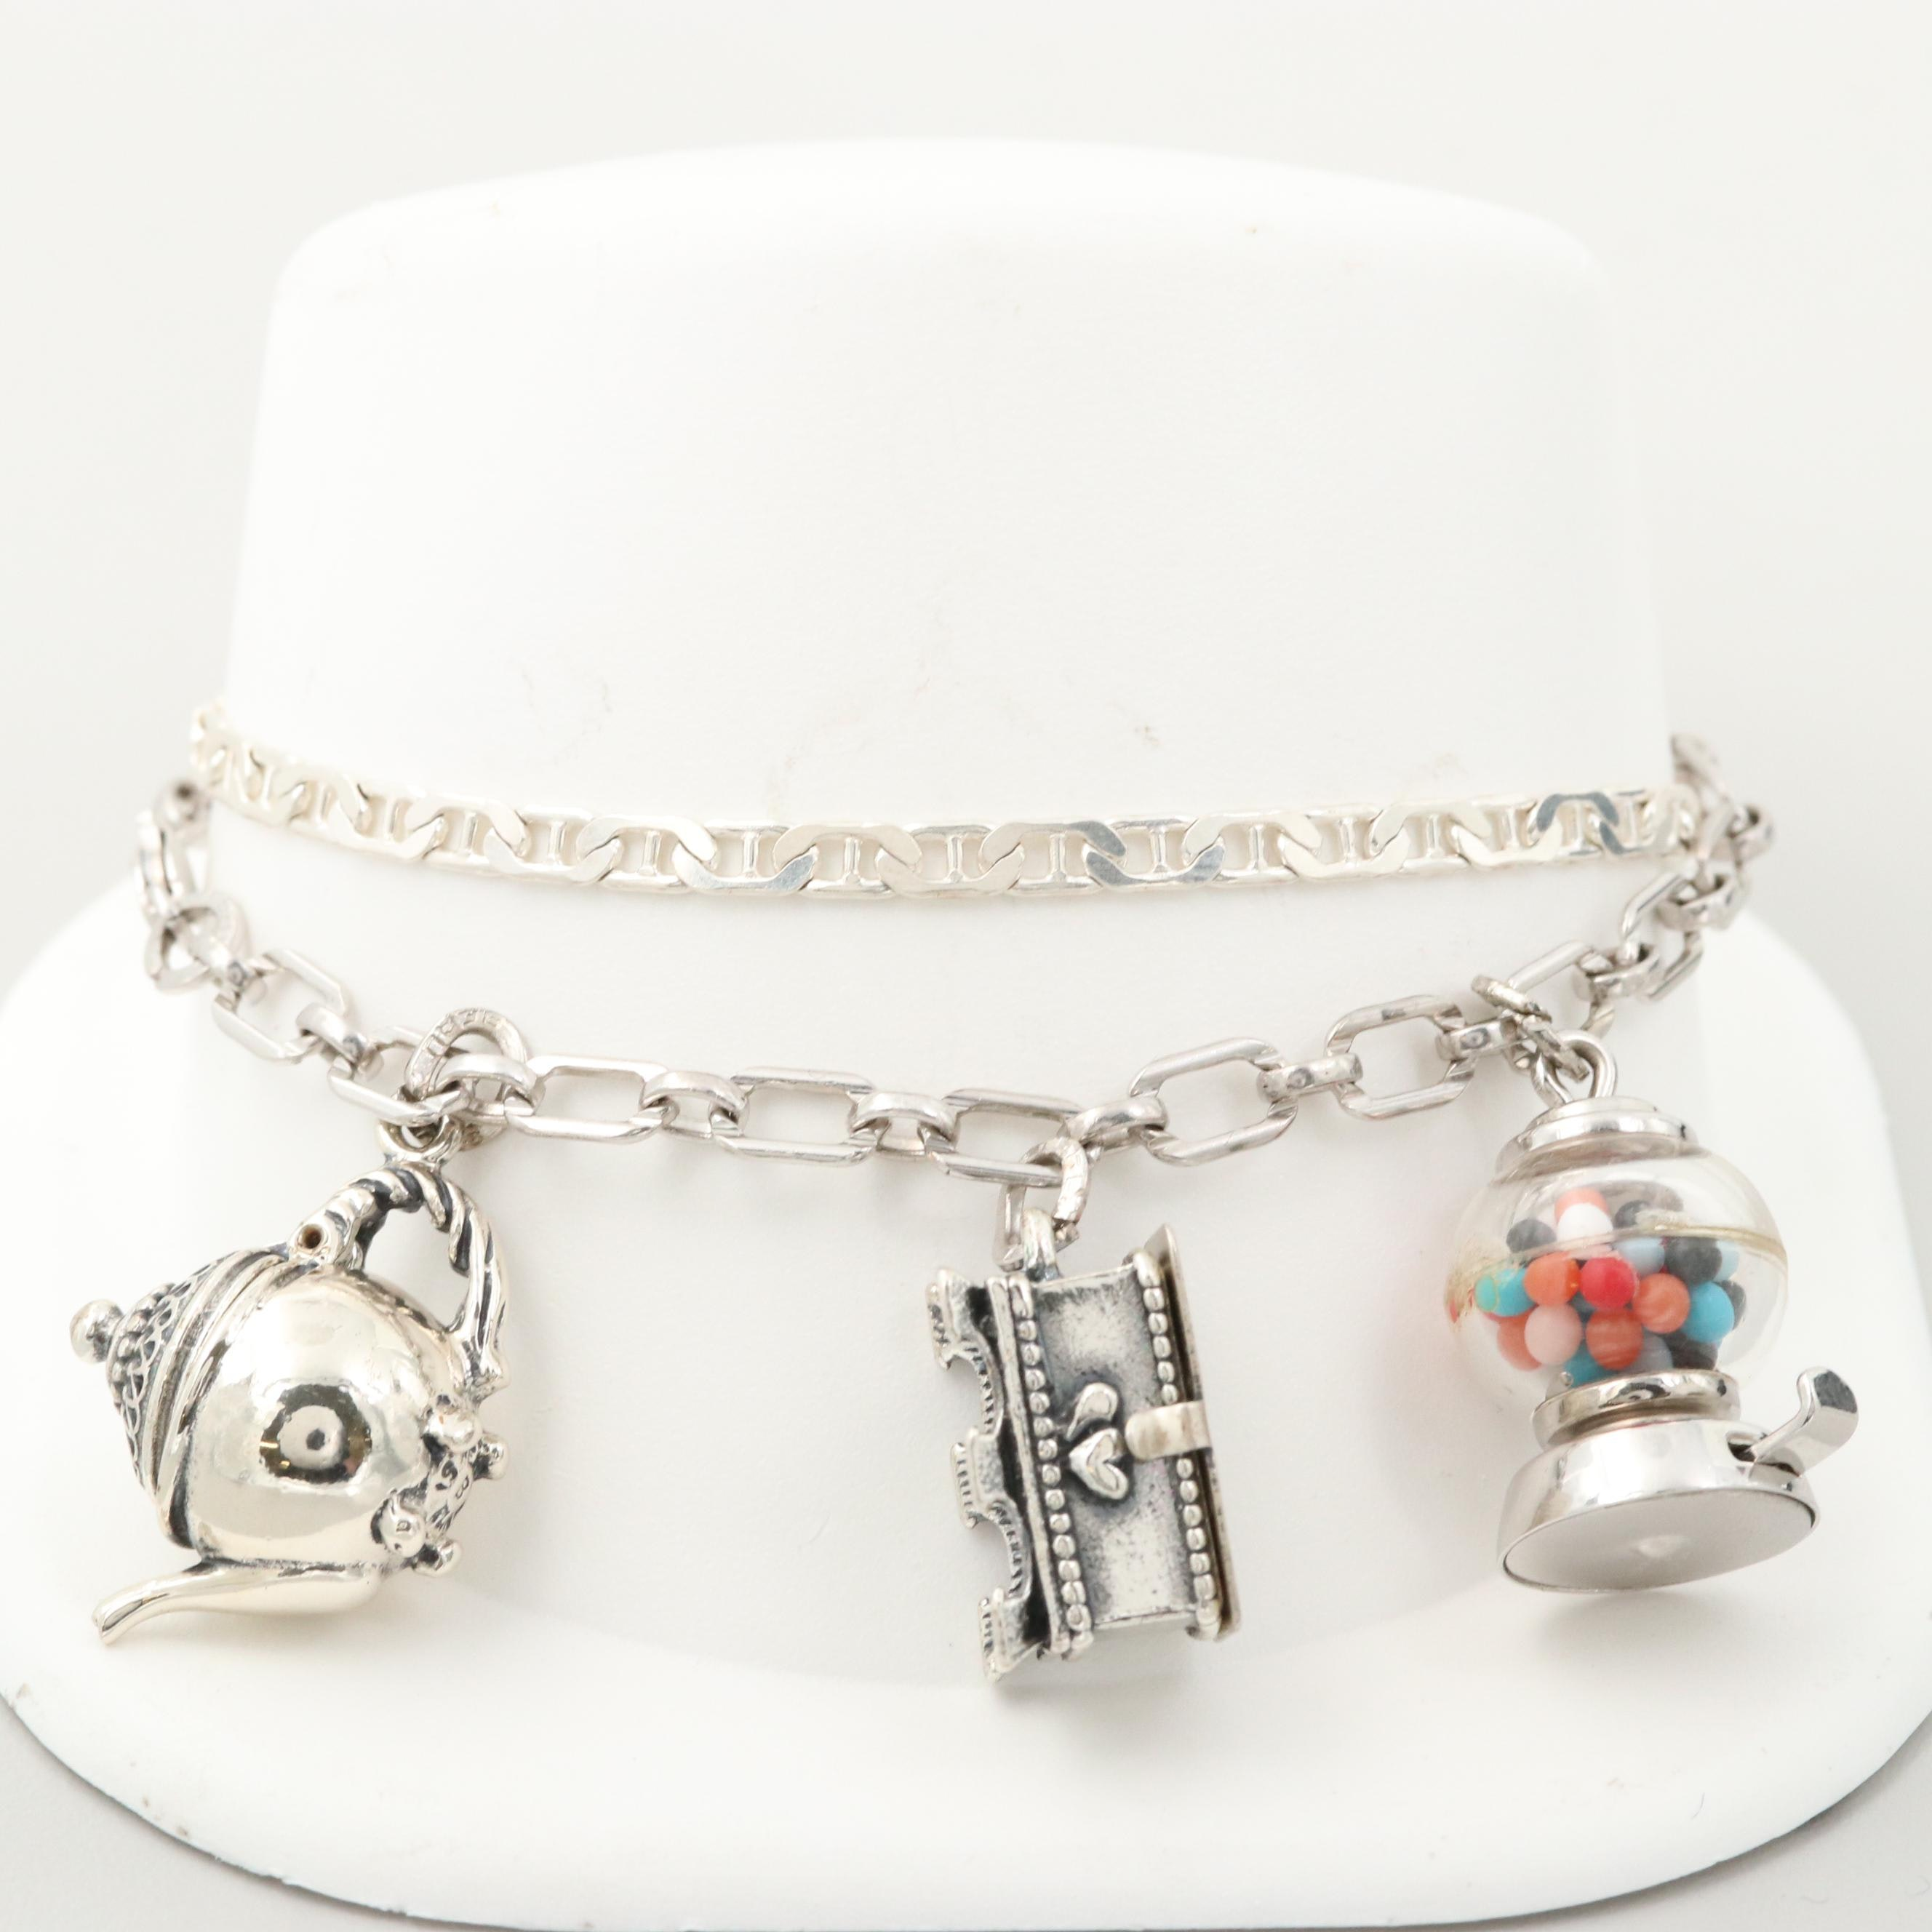 Sterling Silver Chain and Plastic Charm Bracelet Featuring Beau